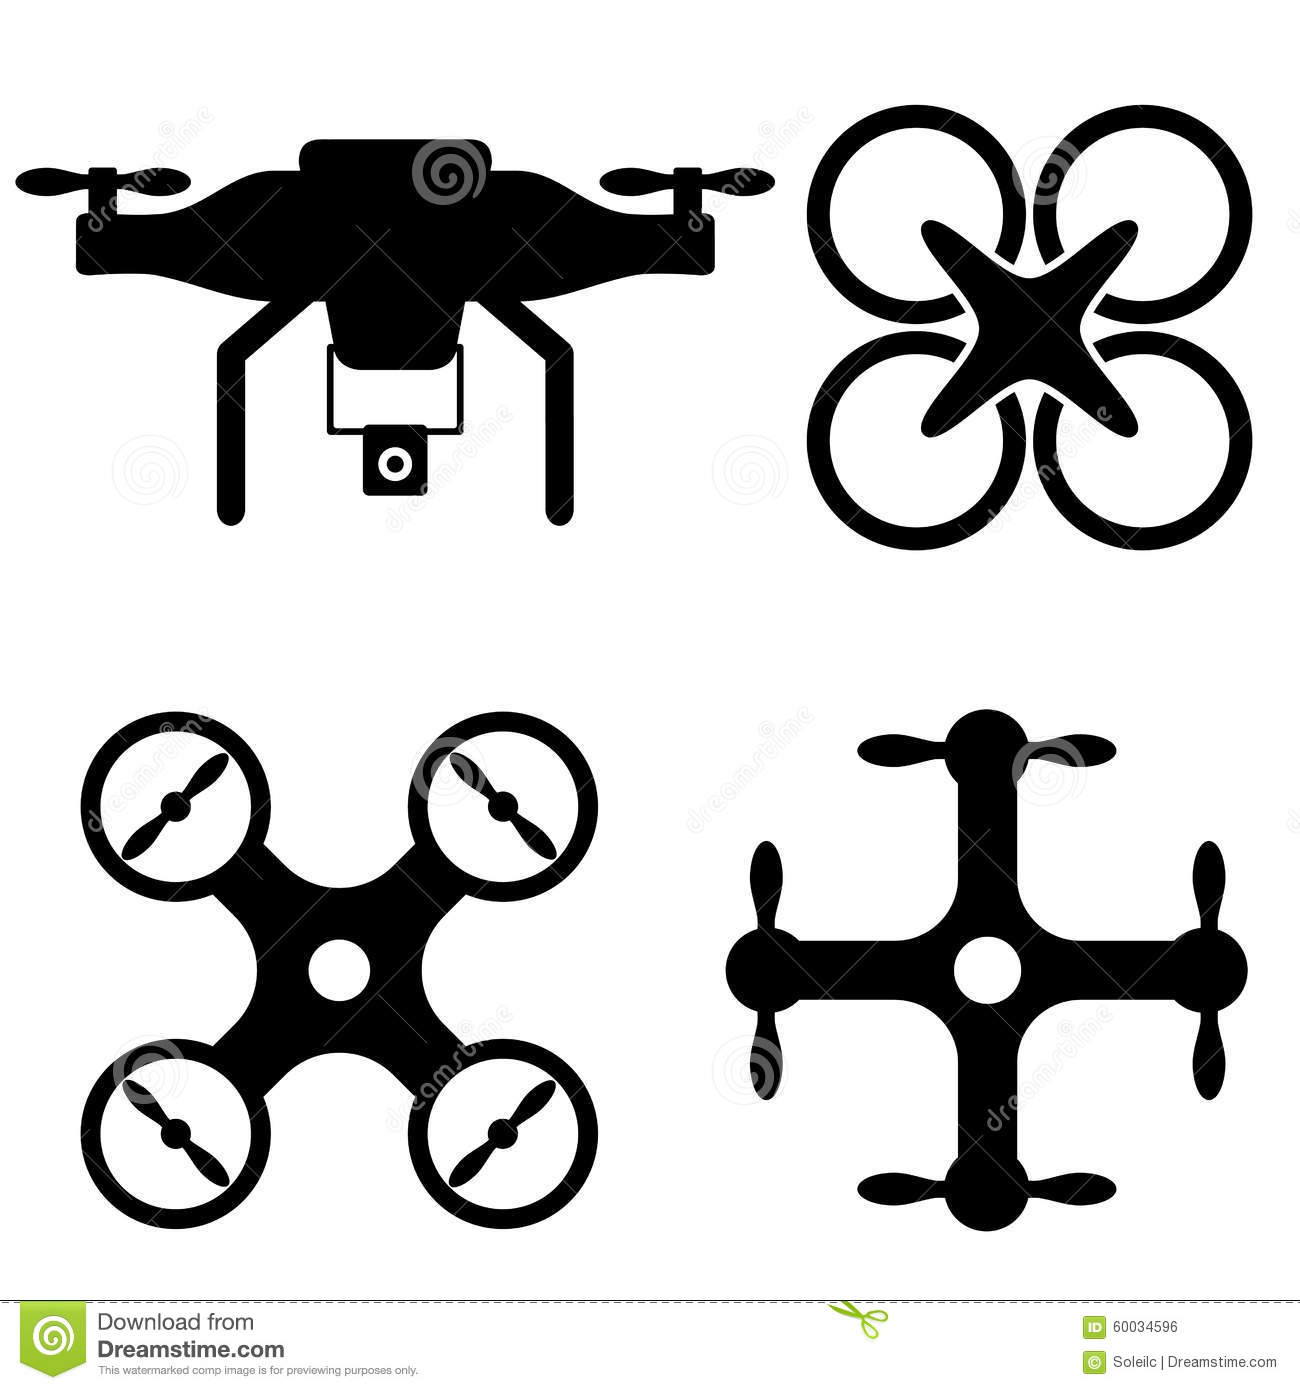 copter rc helicopter with Stock Illustration Drone Uav Icons Models Icon Set Image60034596 on 32799387250 as well Dronium One Ap Drone With Camera additionally Watch in addition 15 Scale As 350 moreover Pokemon Black BW Takara KYUREM Soft Vinyl Action Figure Toy Sofubi DX White 8 Tomy.